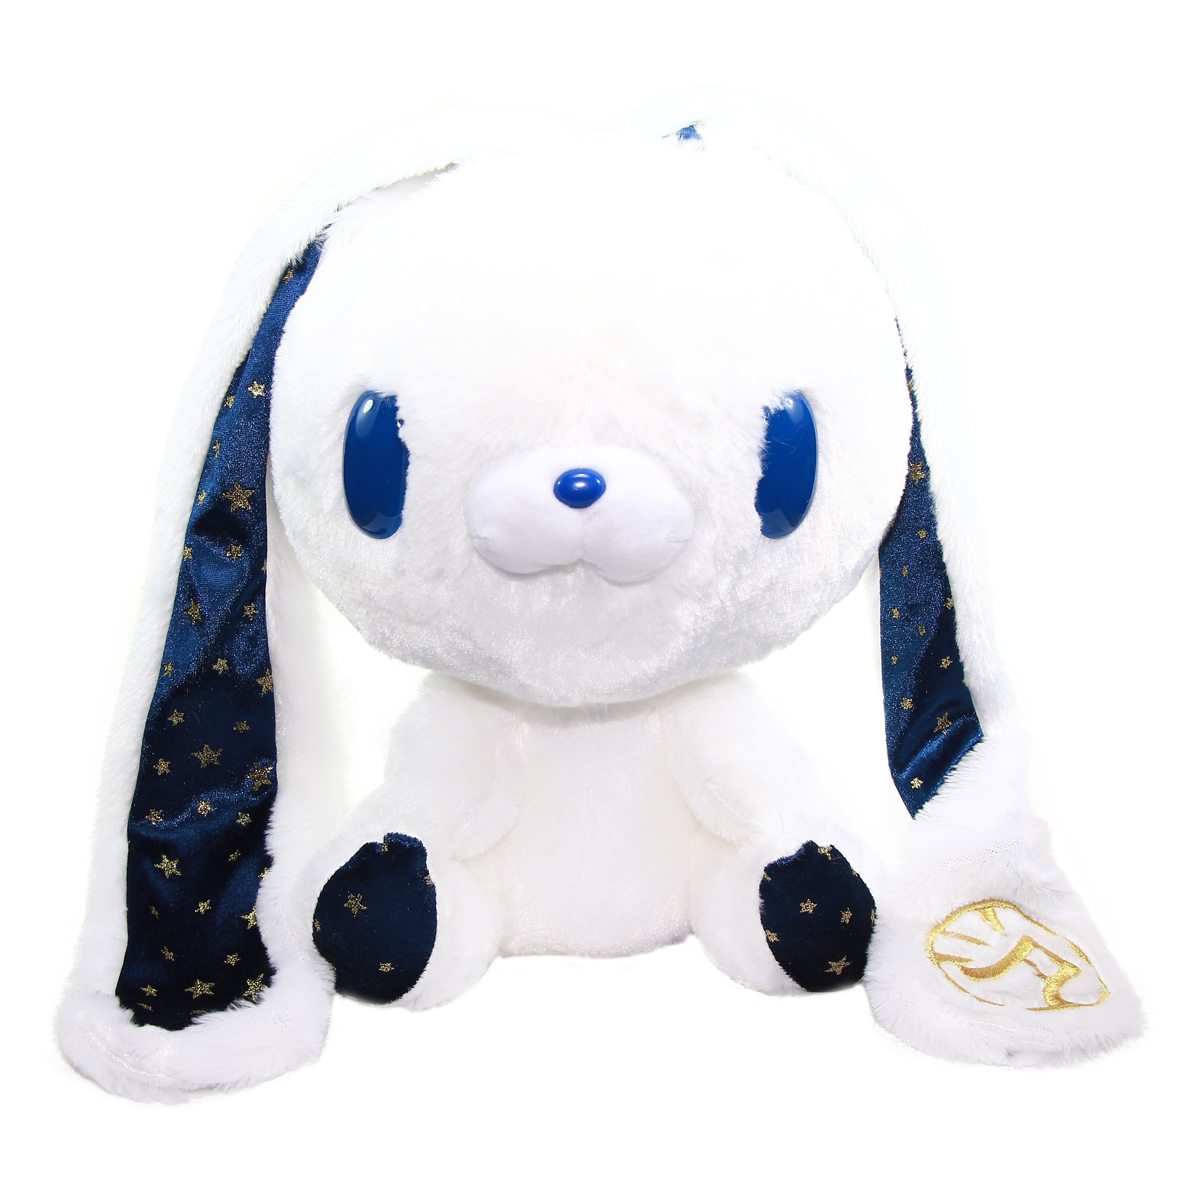 Taito Gloomy Bear Bunny Plush Doll Starry Edition GP #545 White 12 Inches